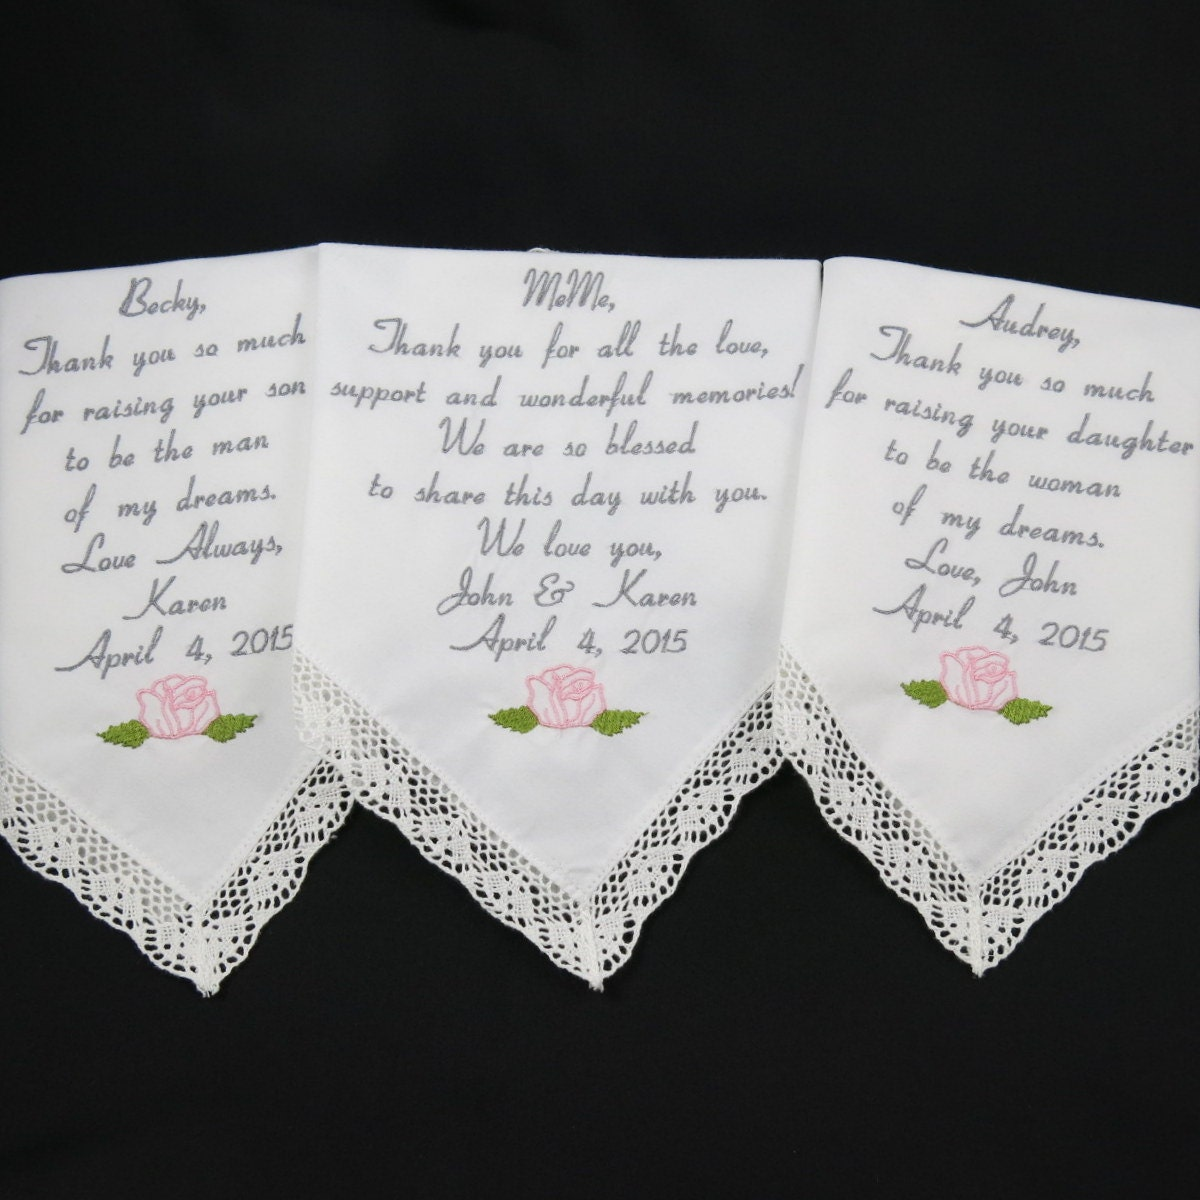 Wedding Poems For Bride And Groom: Mother Of The Bride Mother Of The Groom Grandma Of The Bride